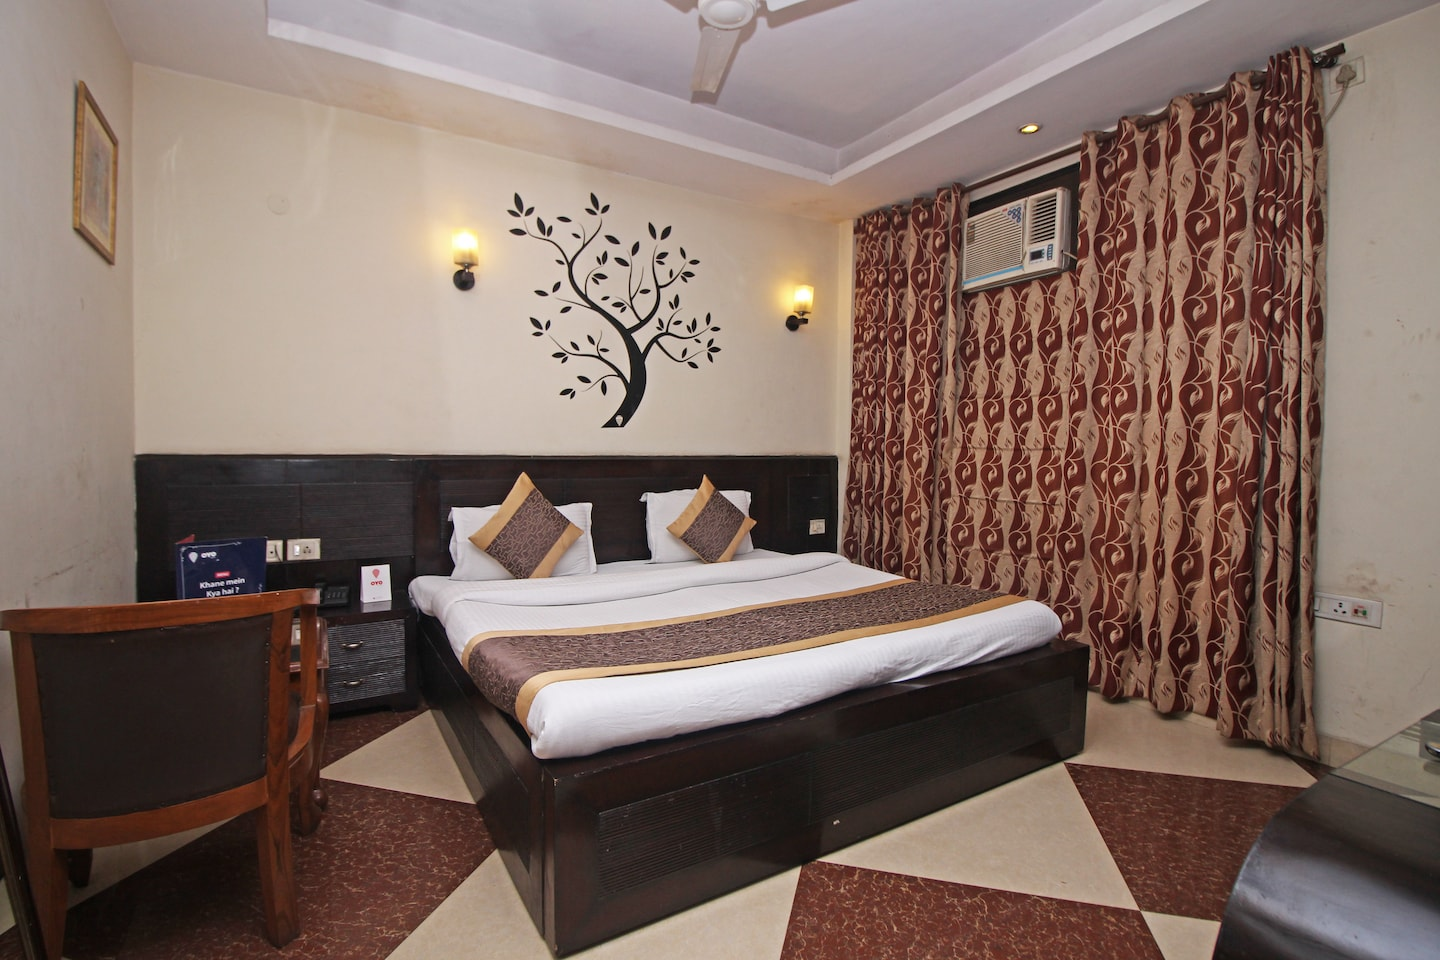 OYO 305 Hotel Rajdeep Palace Room-1